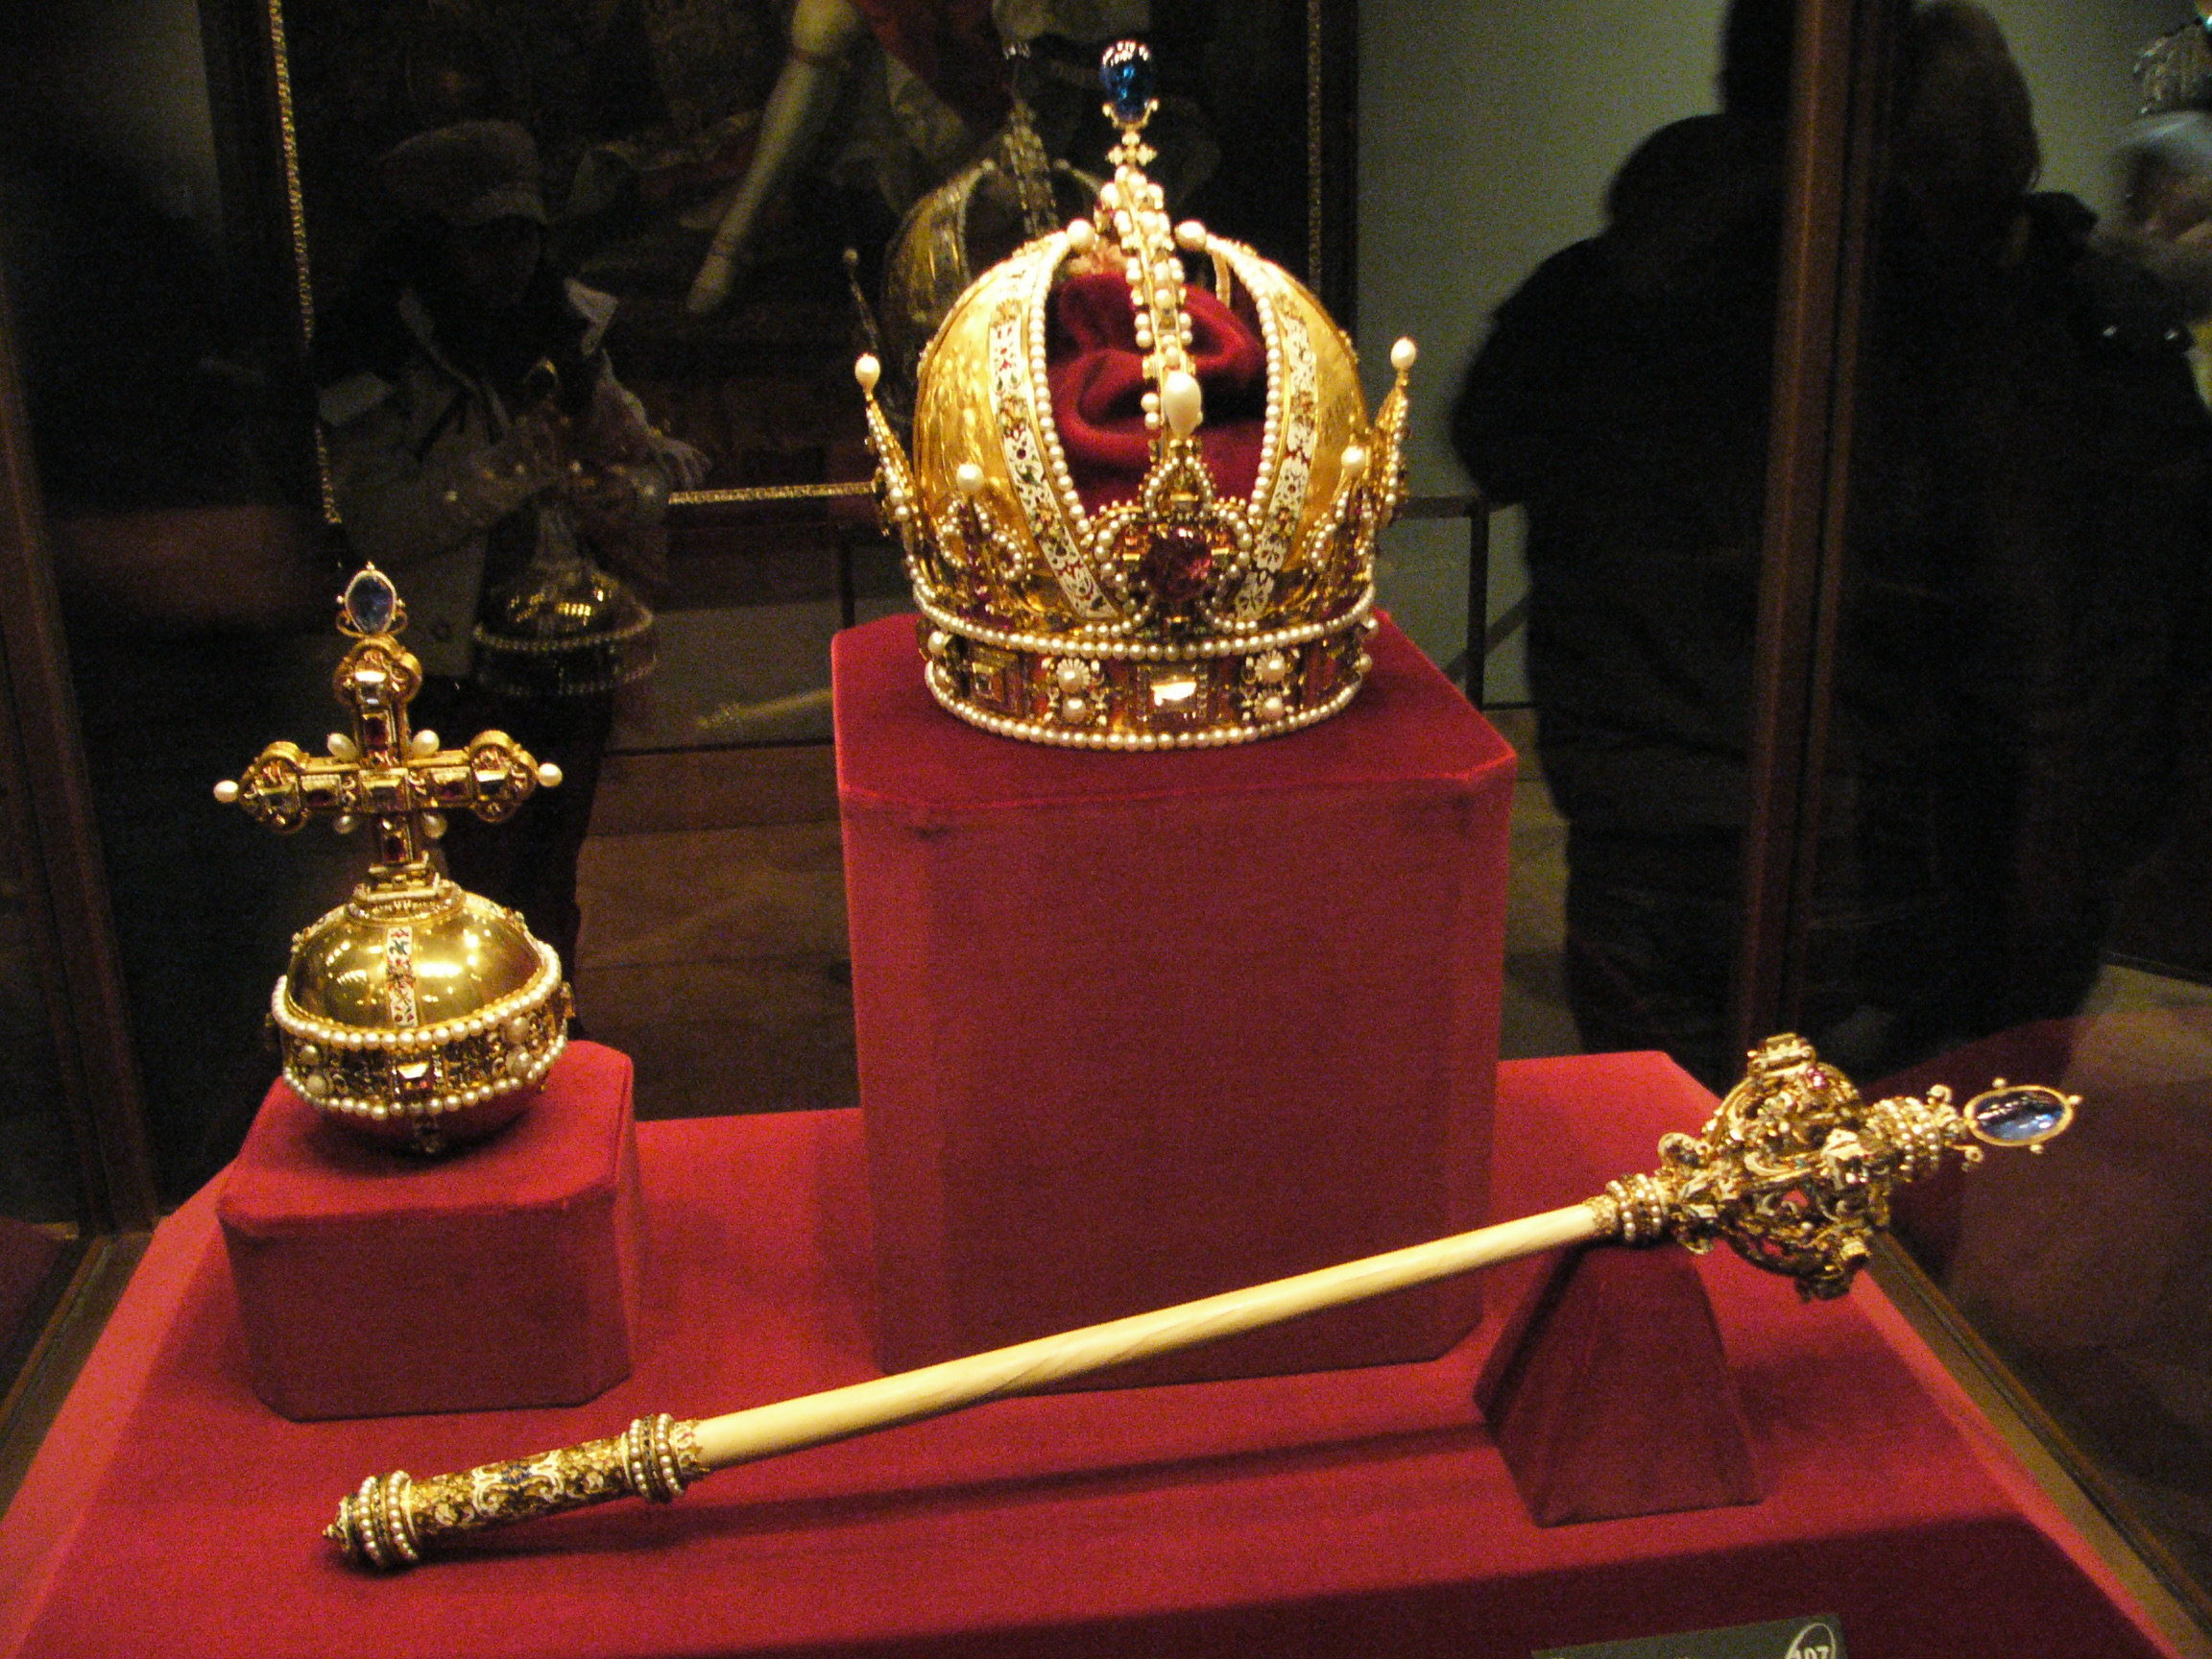 File:Sceptre and Orb and Imperial Crown of Austria.jpg - Wikipedia ...